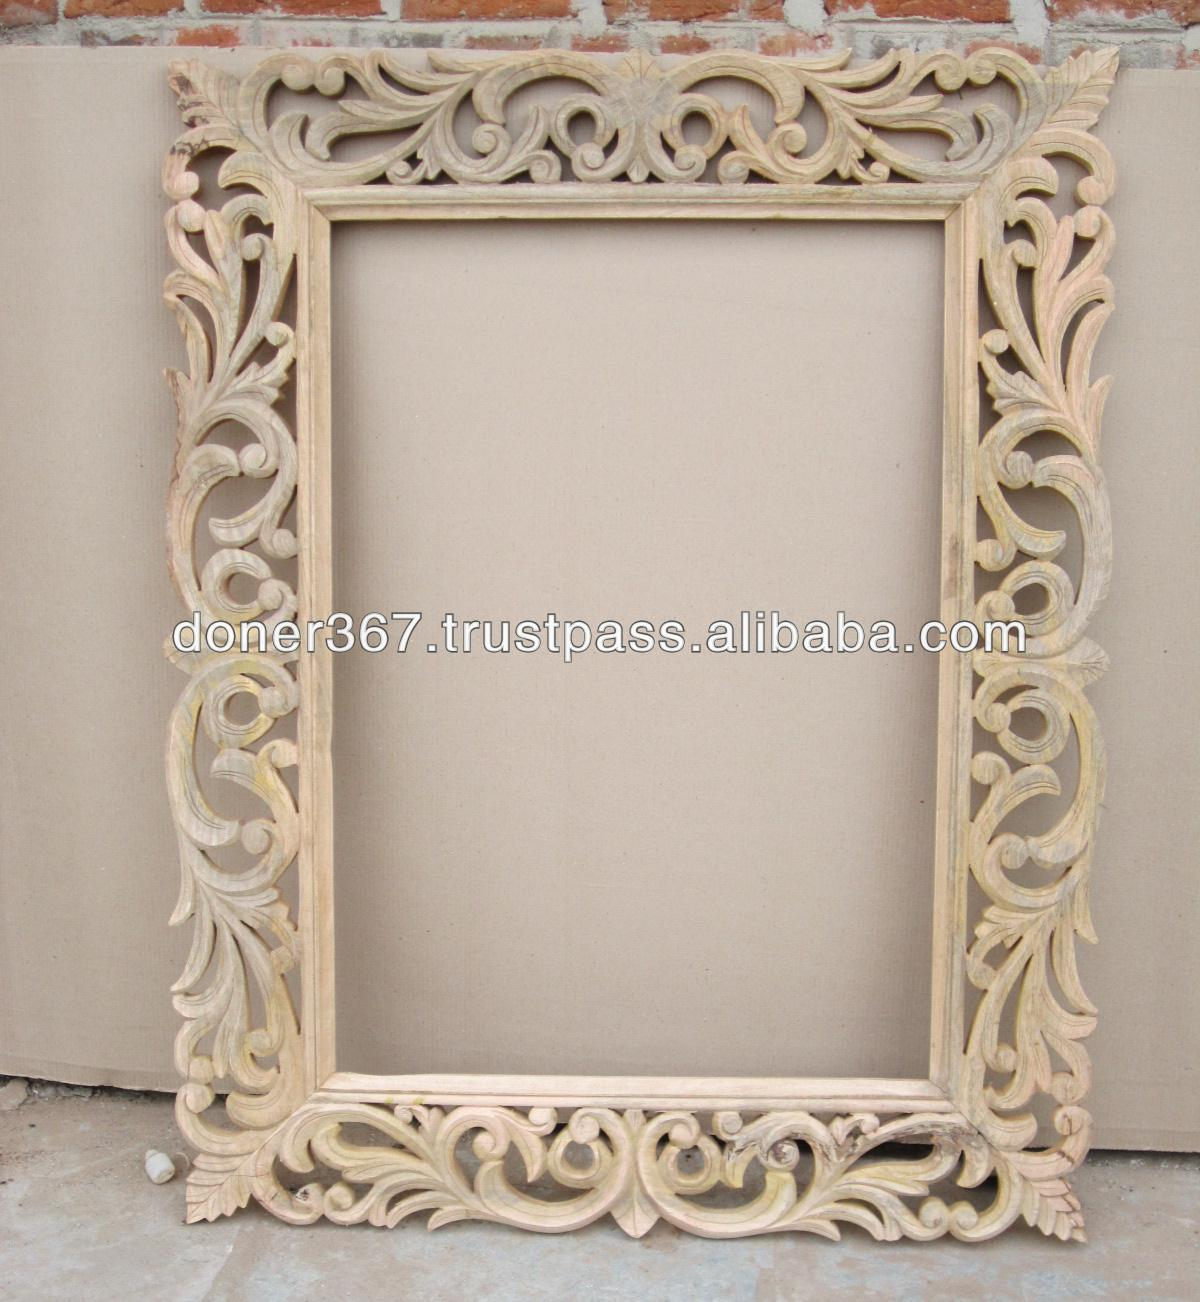 carved wooden mirror frames carved wooden mirror frames suppliers and manufacturers at alibabacom